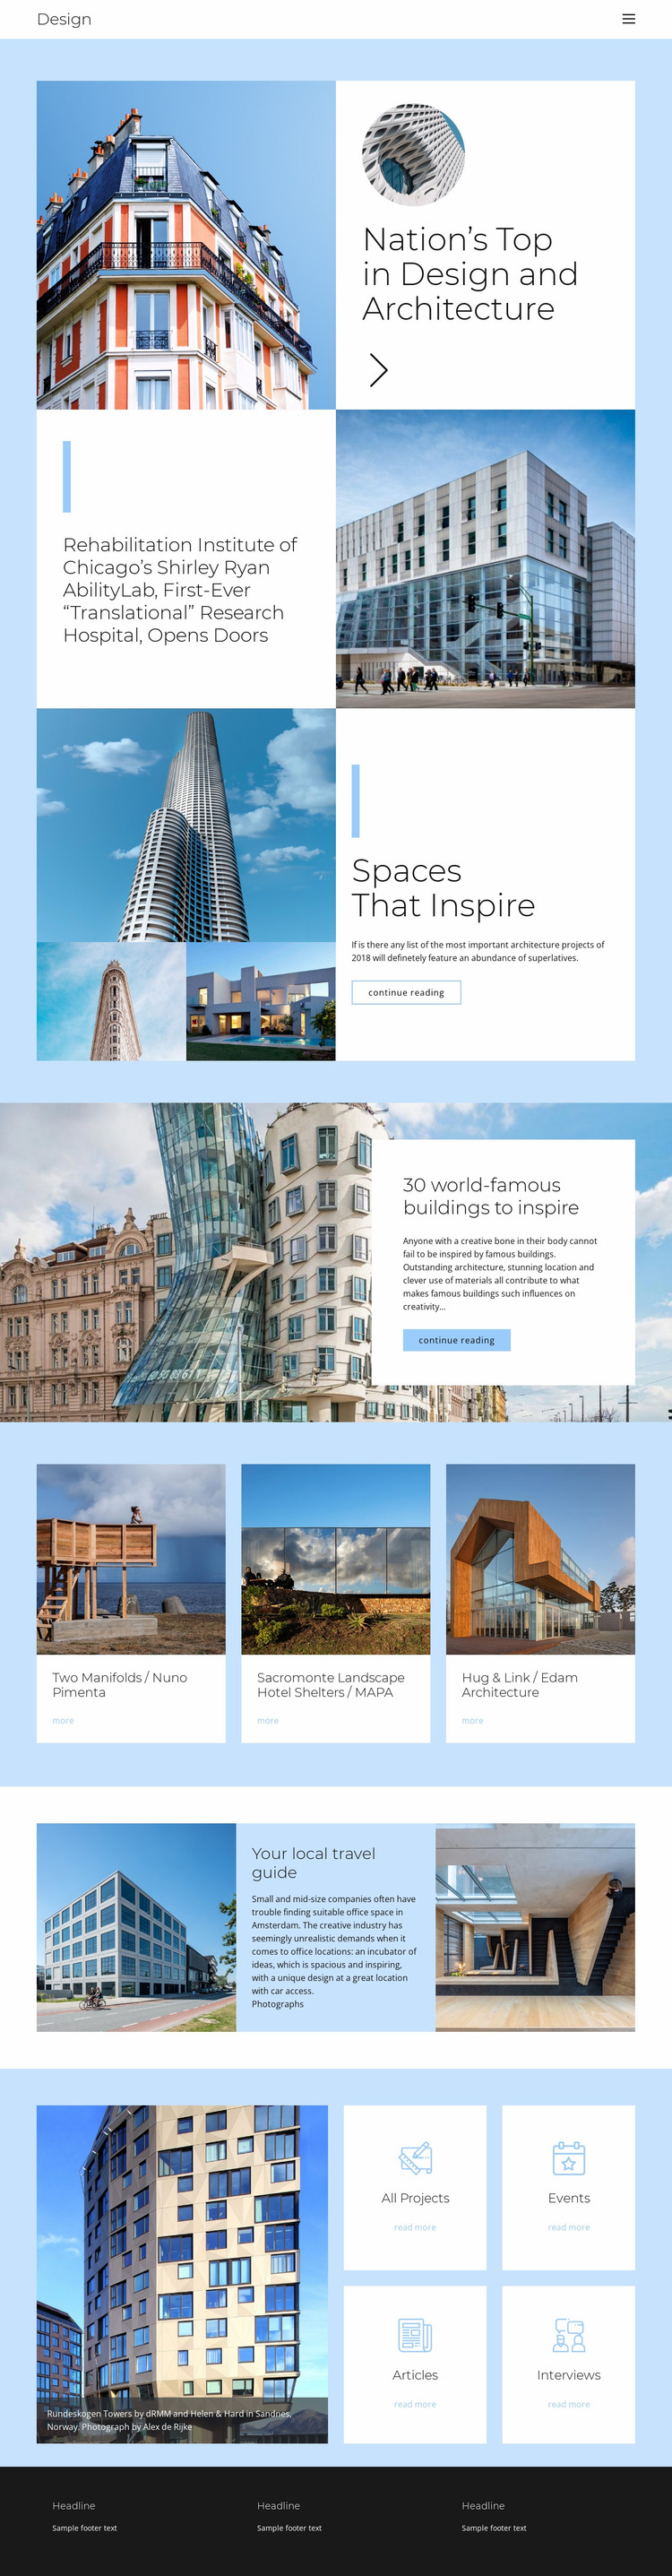 Architecture city guide Website Mockup